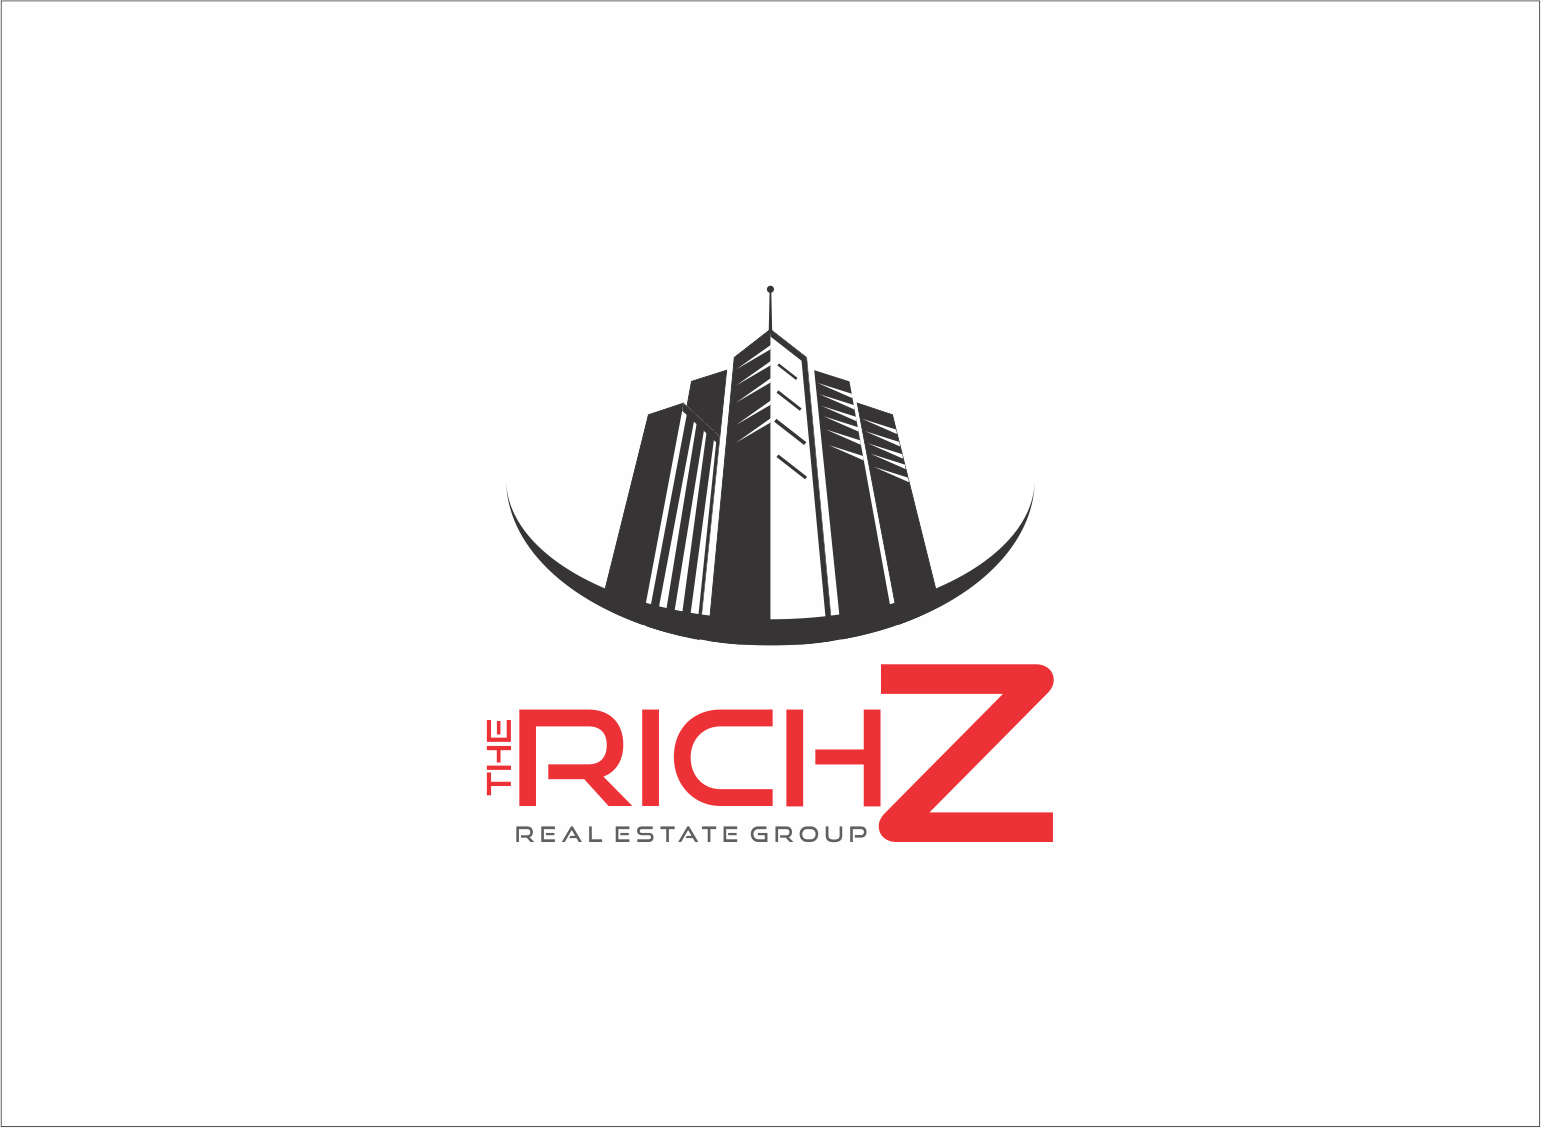 Logo Design by Armada Jamaluddin - Entry No. 396 in the Logo Design Contest The Rich Z. Real Estate Group Logo Design.